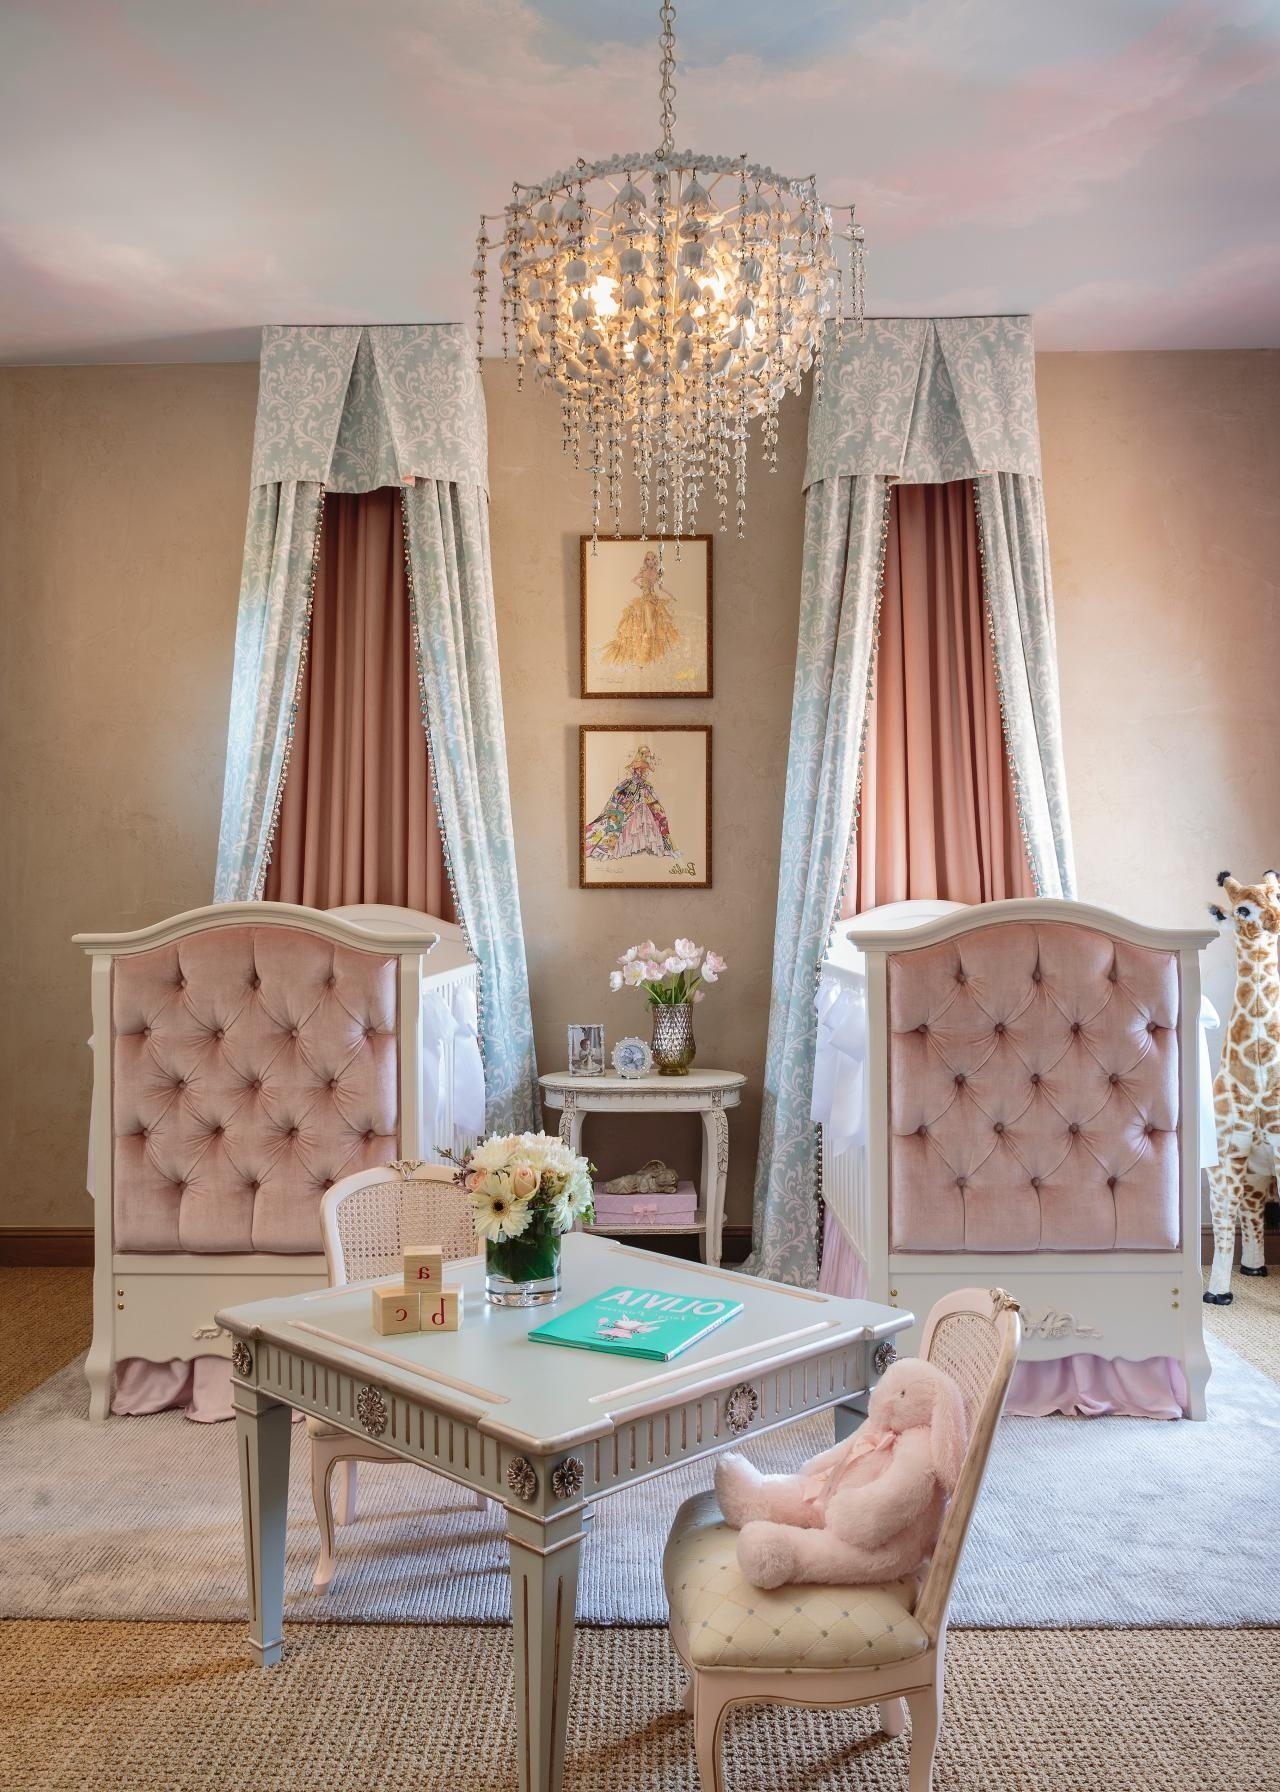 Favorite Chandeliers For Baby Girl Room Pertaining To Chandeliers Design : Magnificent Mini Chrome Crystal Chandelier For (View 10 of 15)